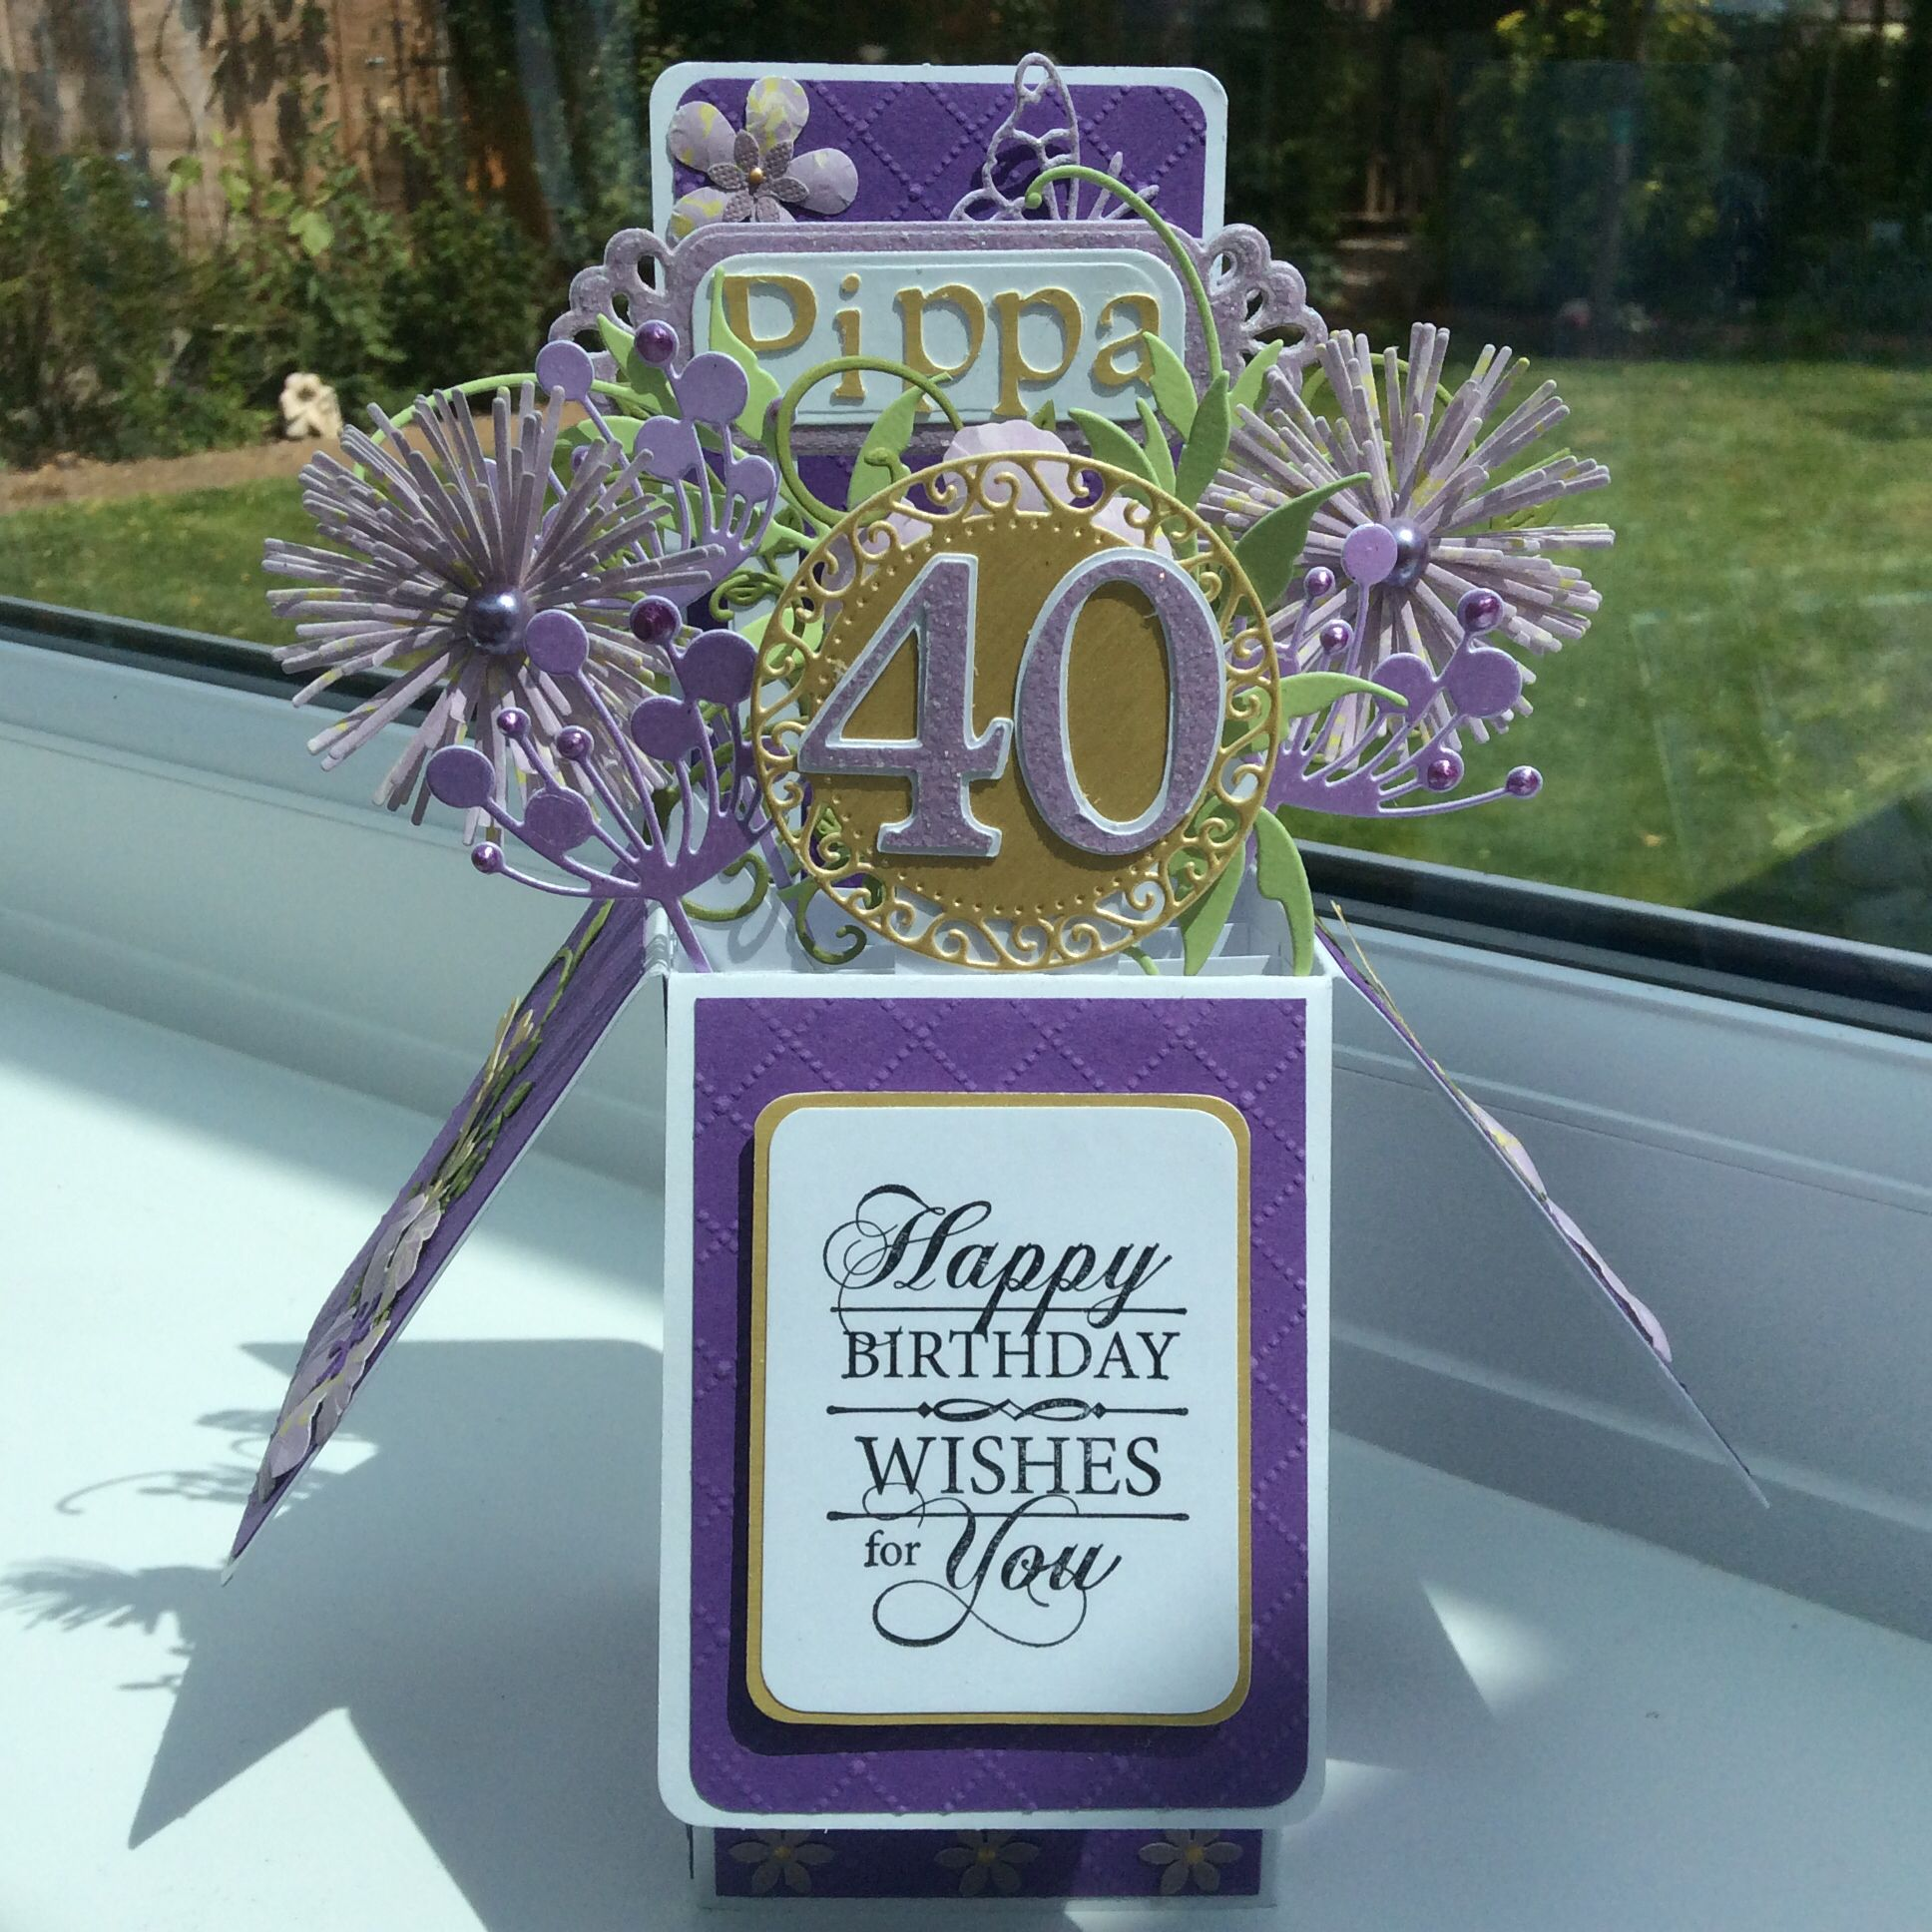 40th Birthday Pop Up Box Card Mary S Cards In A Box Pinterest